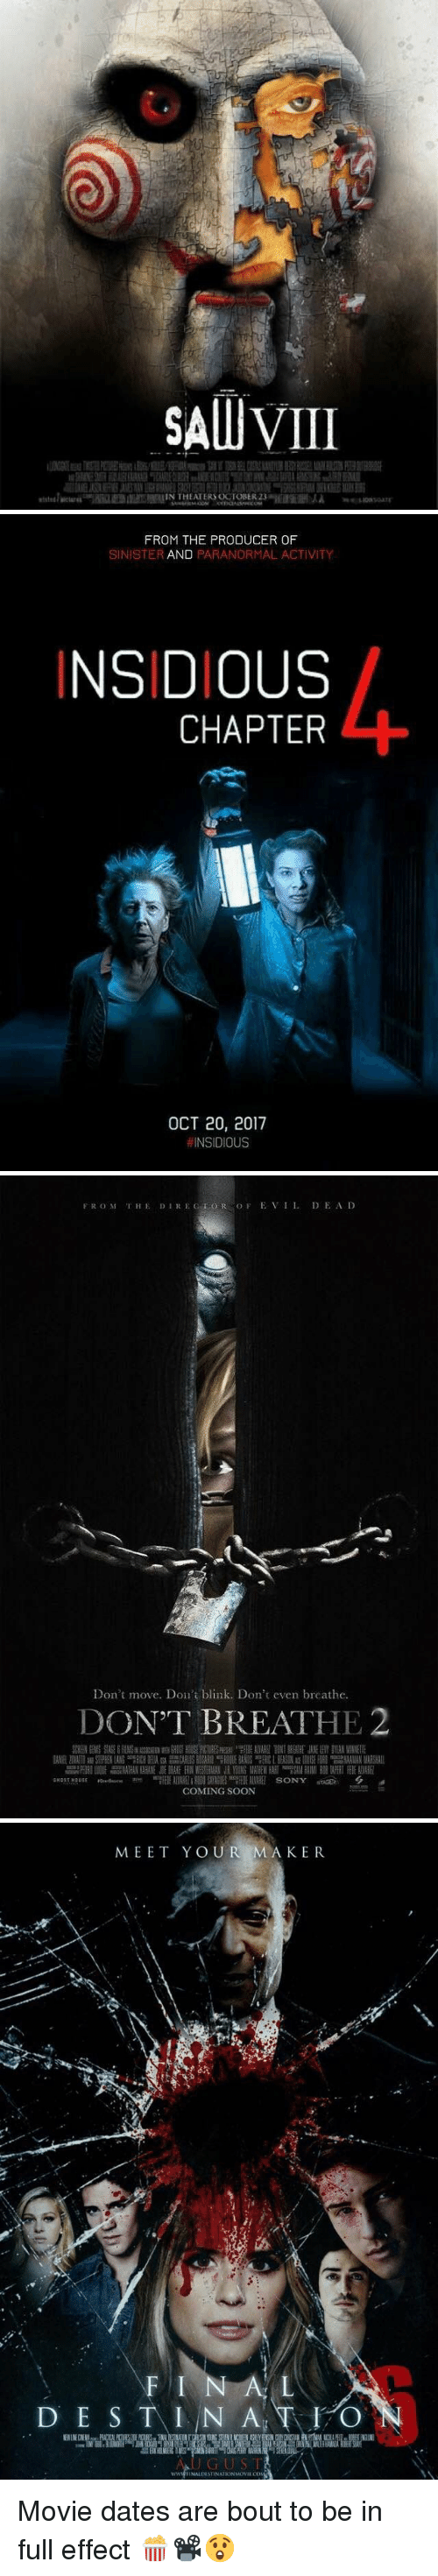 insidious: SAUUVILI  IN THEATER OCTORER23   FROM THE PRODUCER OF  SINISTER  AND  PARANORMAL ACTIVITY  INSIDIOUS  CHAPTER  OCT 20, 2017  INSIDIOUS   FROM THE DI REC OR do F E VII. DEAD  Don't move. Don't blink. Don't even breathe.  DON'T BREATHE  COMING SOON   MEET YOUR MAKER  DE S  T I N A  T O  N  NALDESTINATION MOVIE CO Movie dates are bout to be in full effect 🍿📽😲